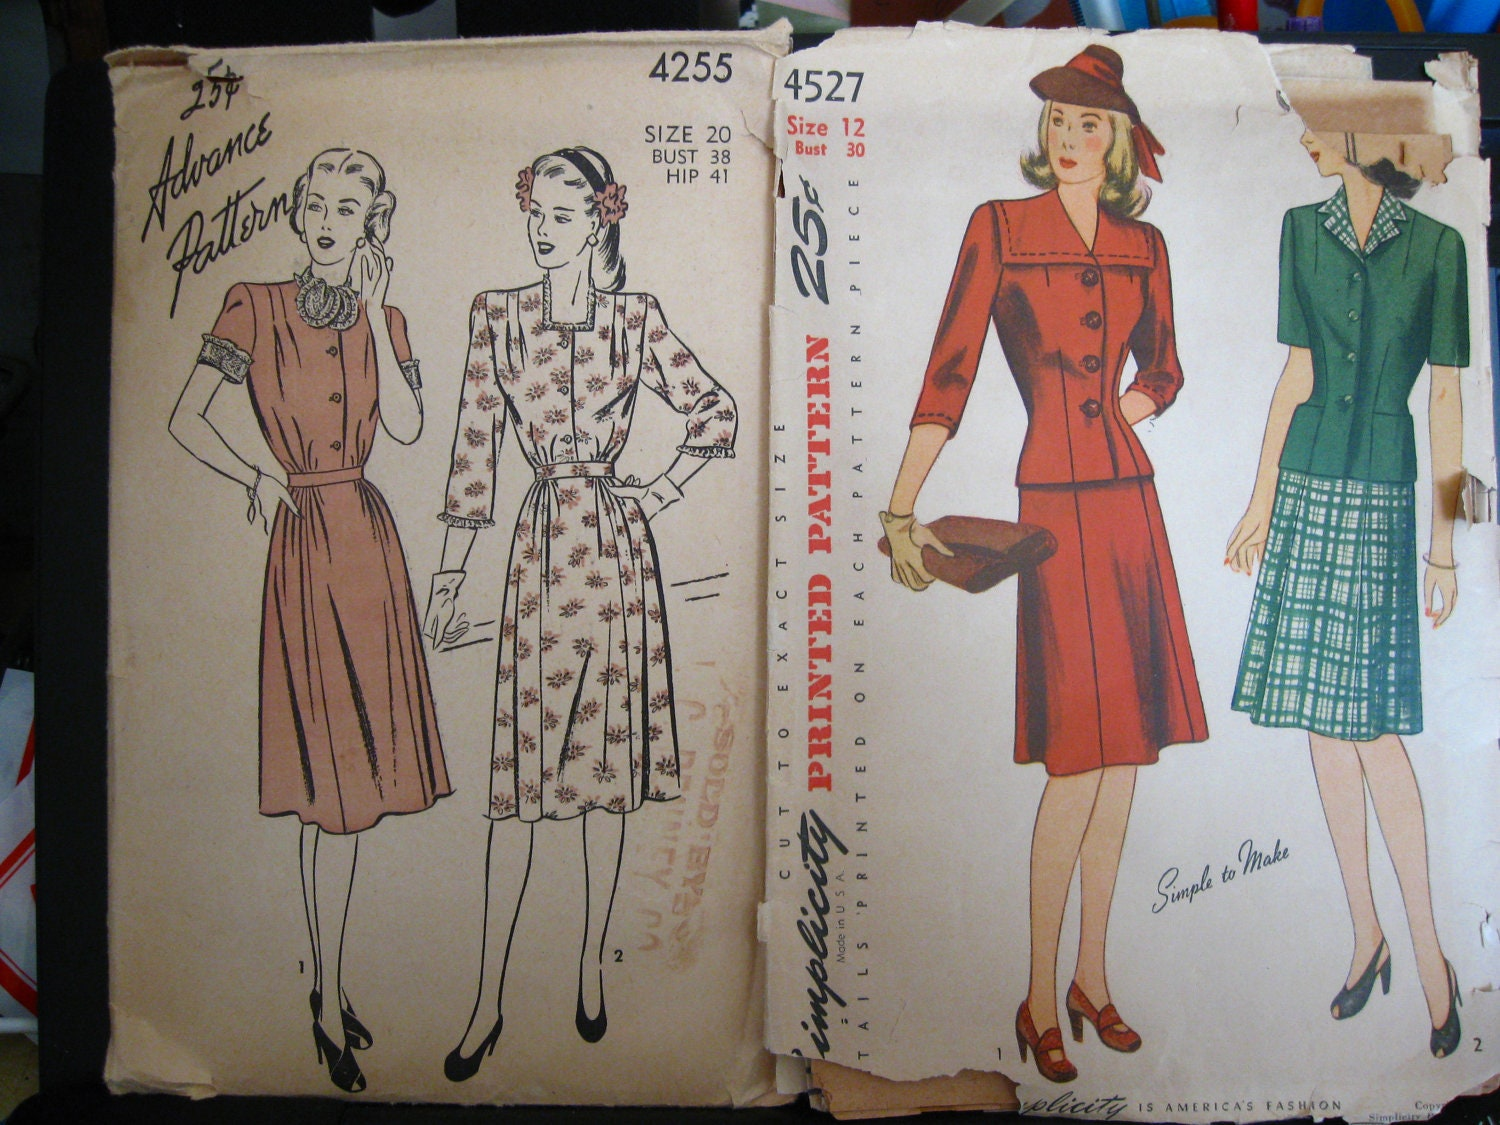 Vintage 1940's Women's Clothing Patterns Robes, Dresses, Shirts